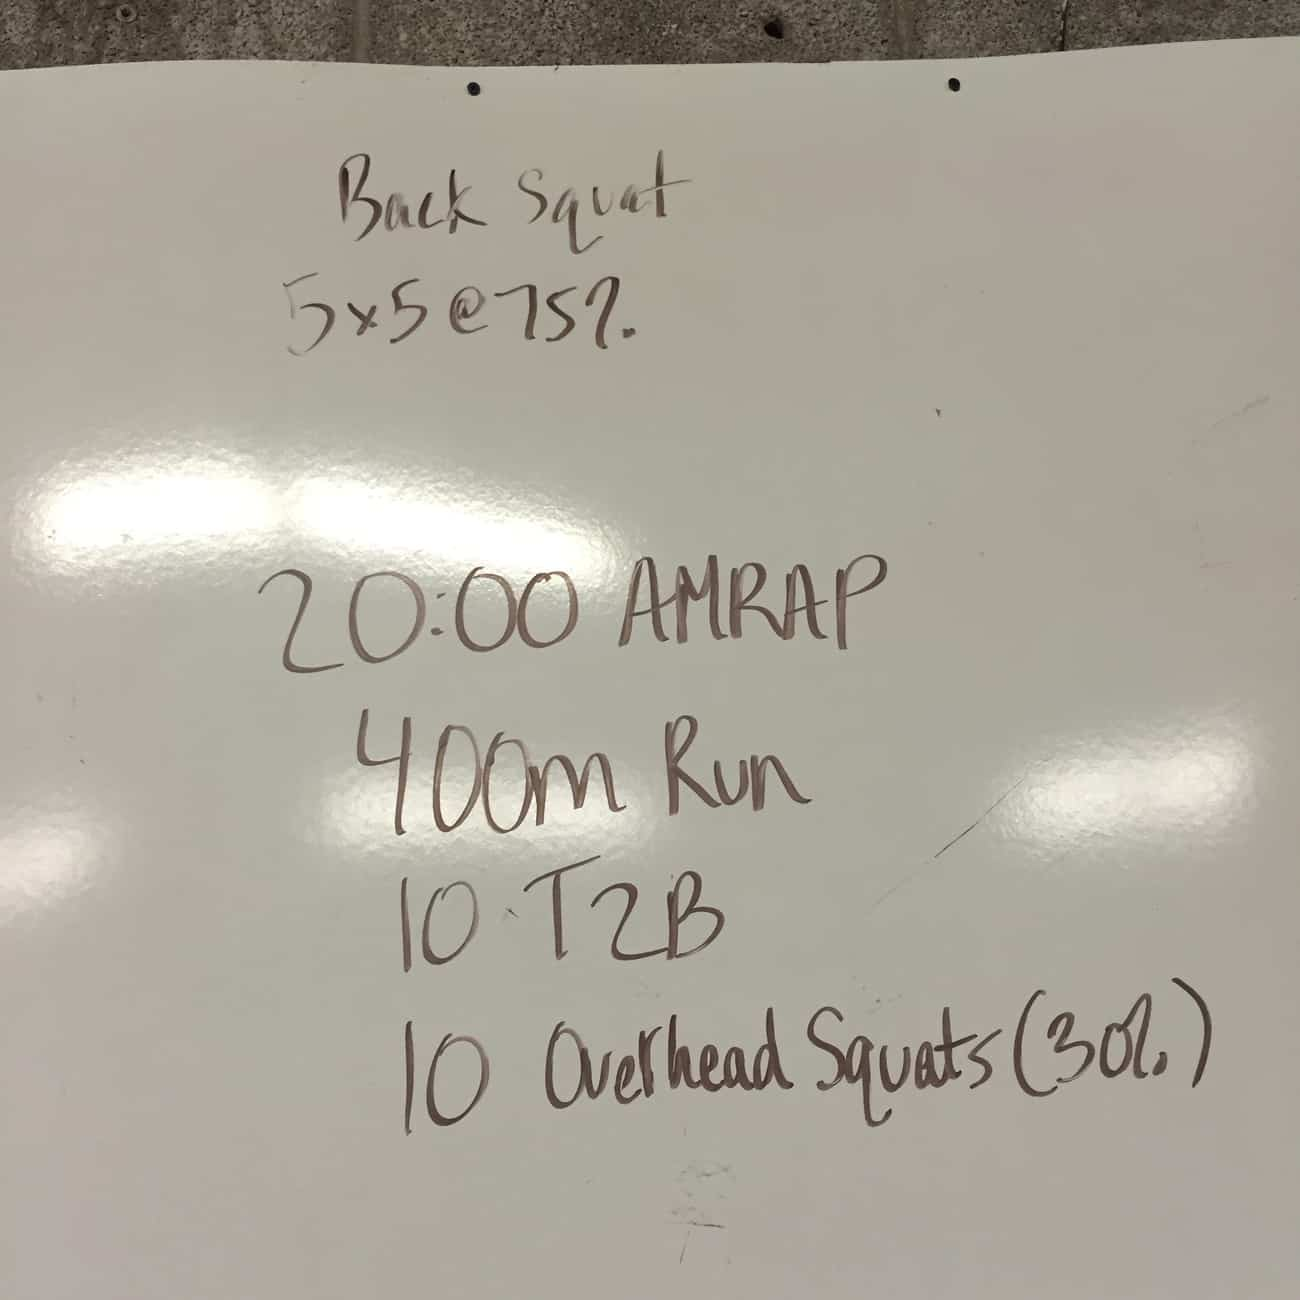 A 20:00 AMRAP of running, toes 2 bar, and overhead squats to work on cardio endurance and your core strength.